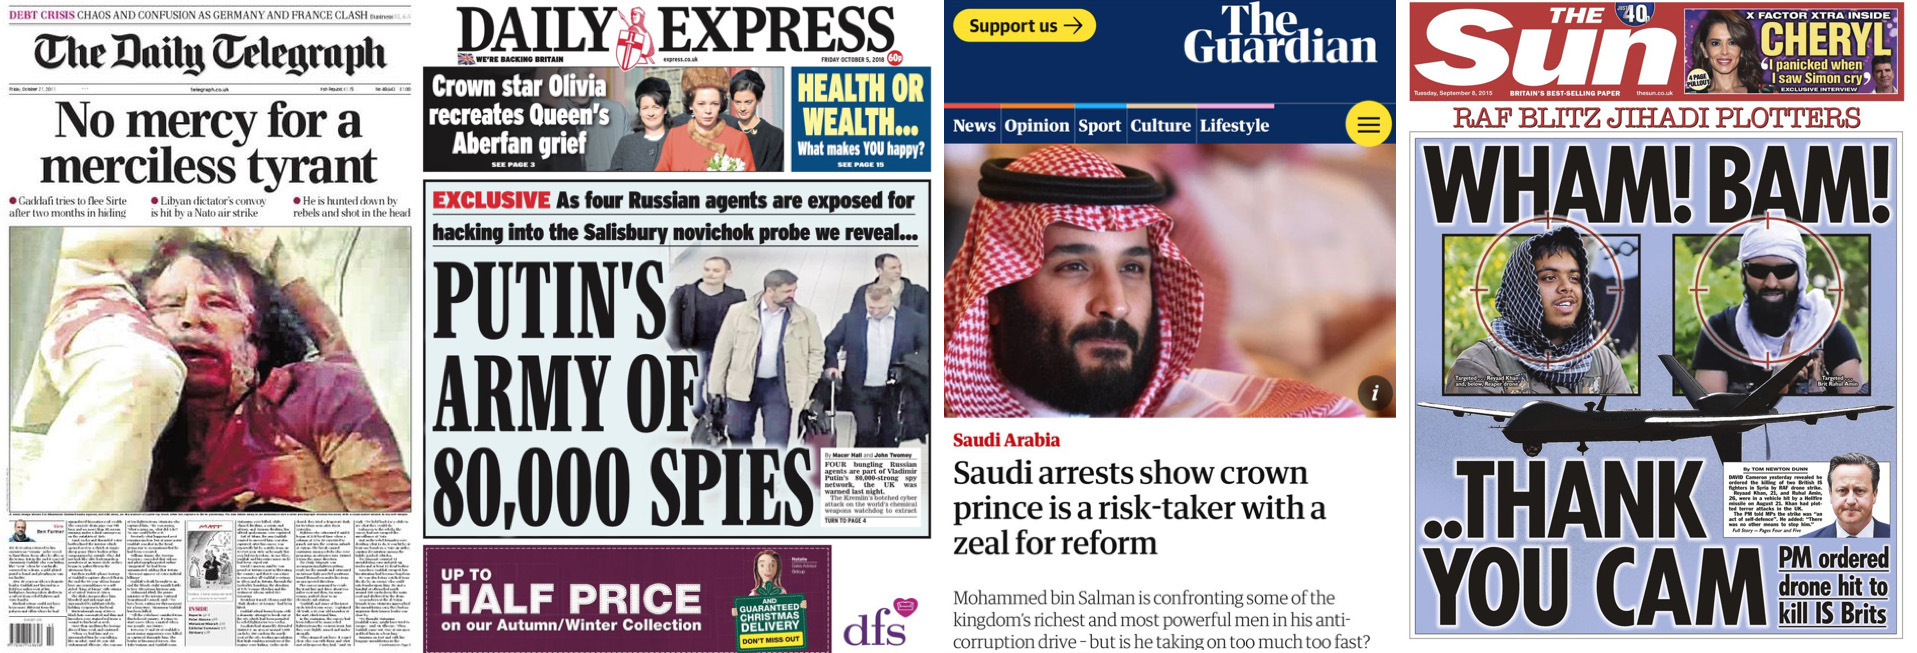 DECLASSIFIED UK : How the UK press is misinforming the public about Britain's role in the world (Part One)